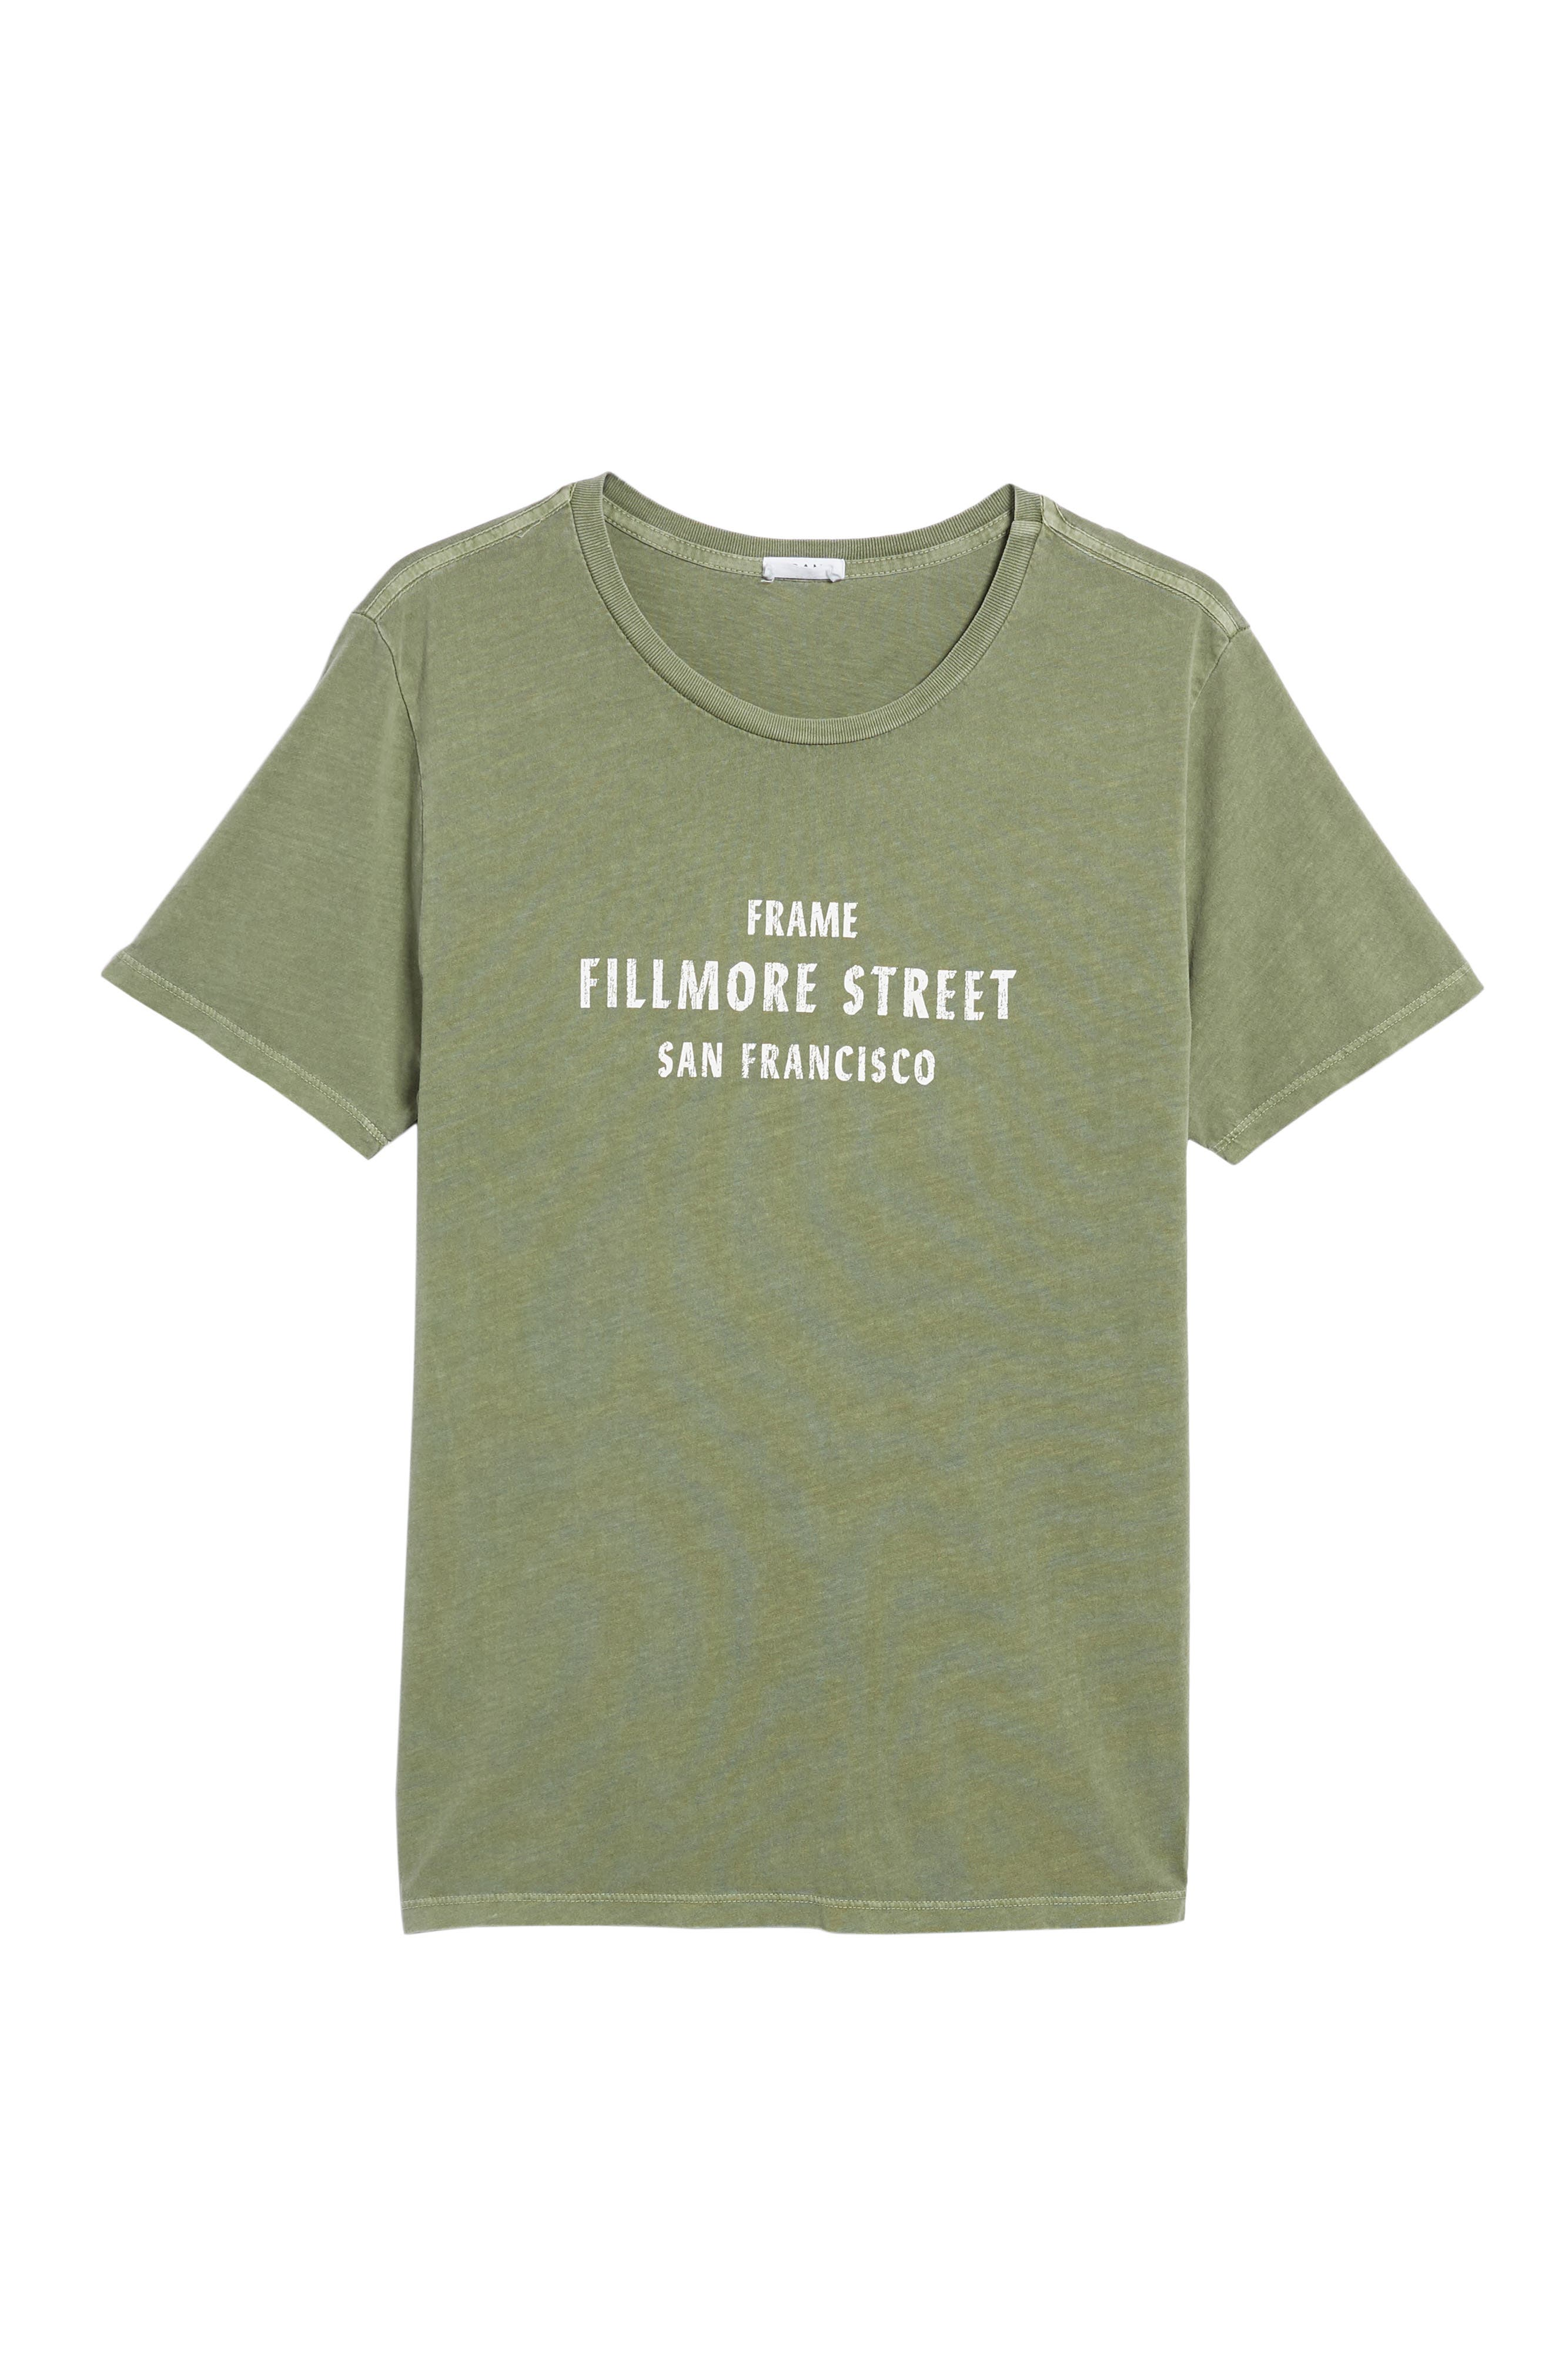 Fillmore Street Vintage Graphic T-Shirt,                             Alternate thumbnail 6, color,                             Army Green